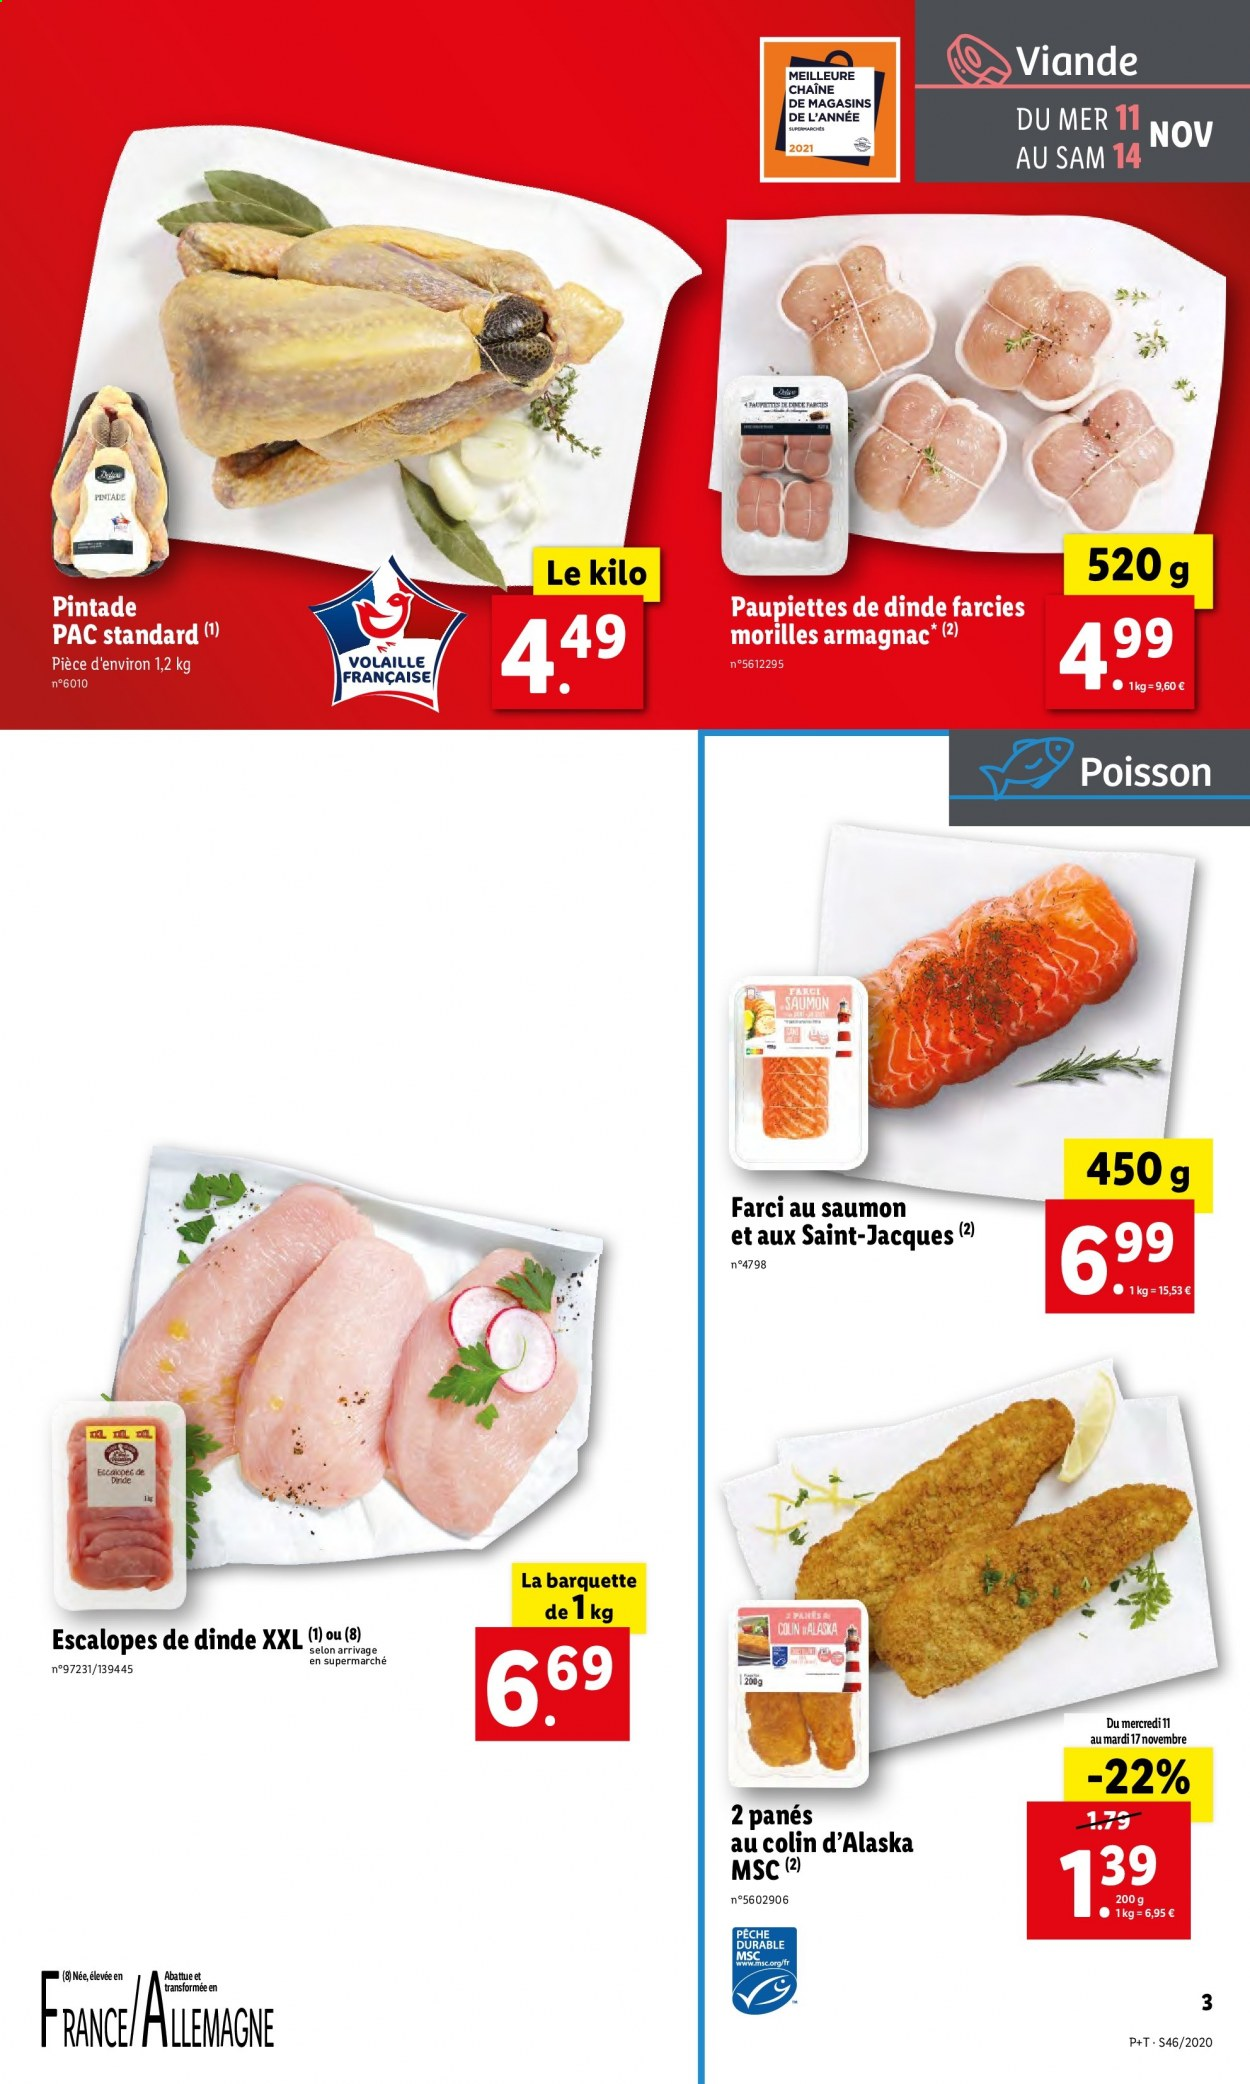 Catalogue Lidl - 11.11.2020 - 17.11.2020. Page 3.